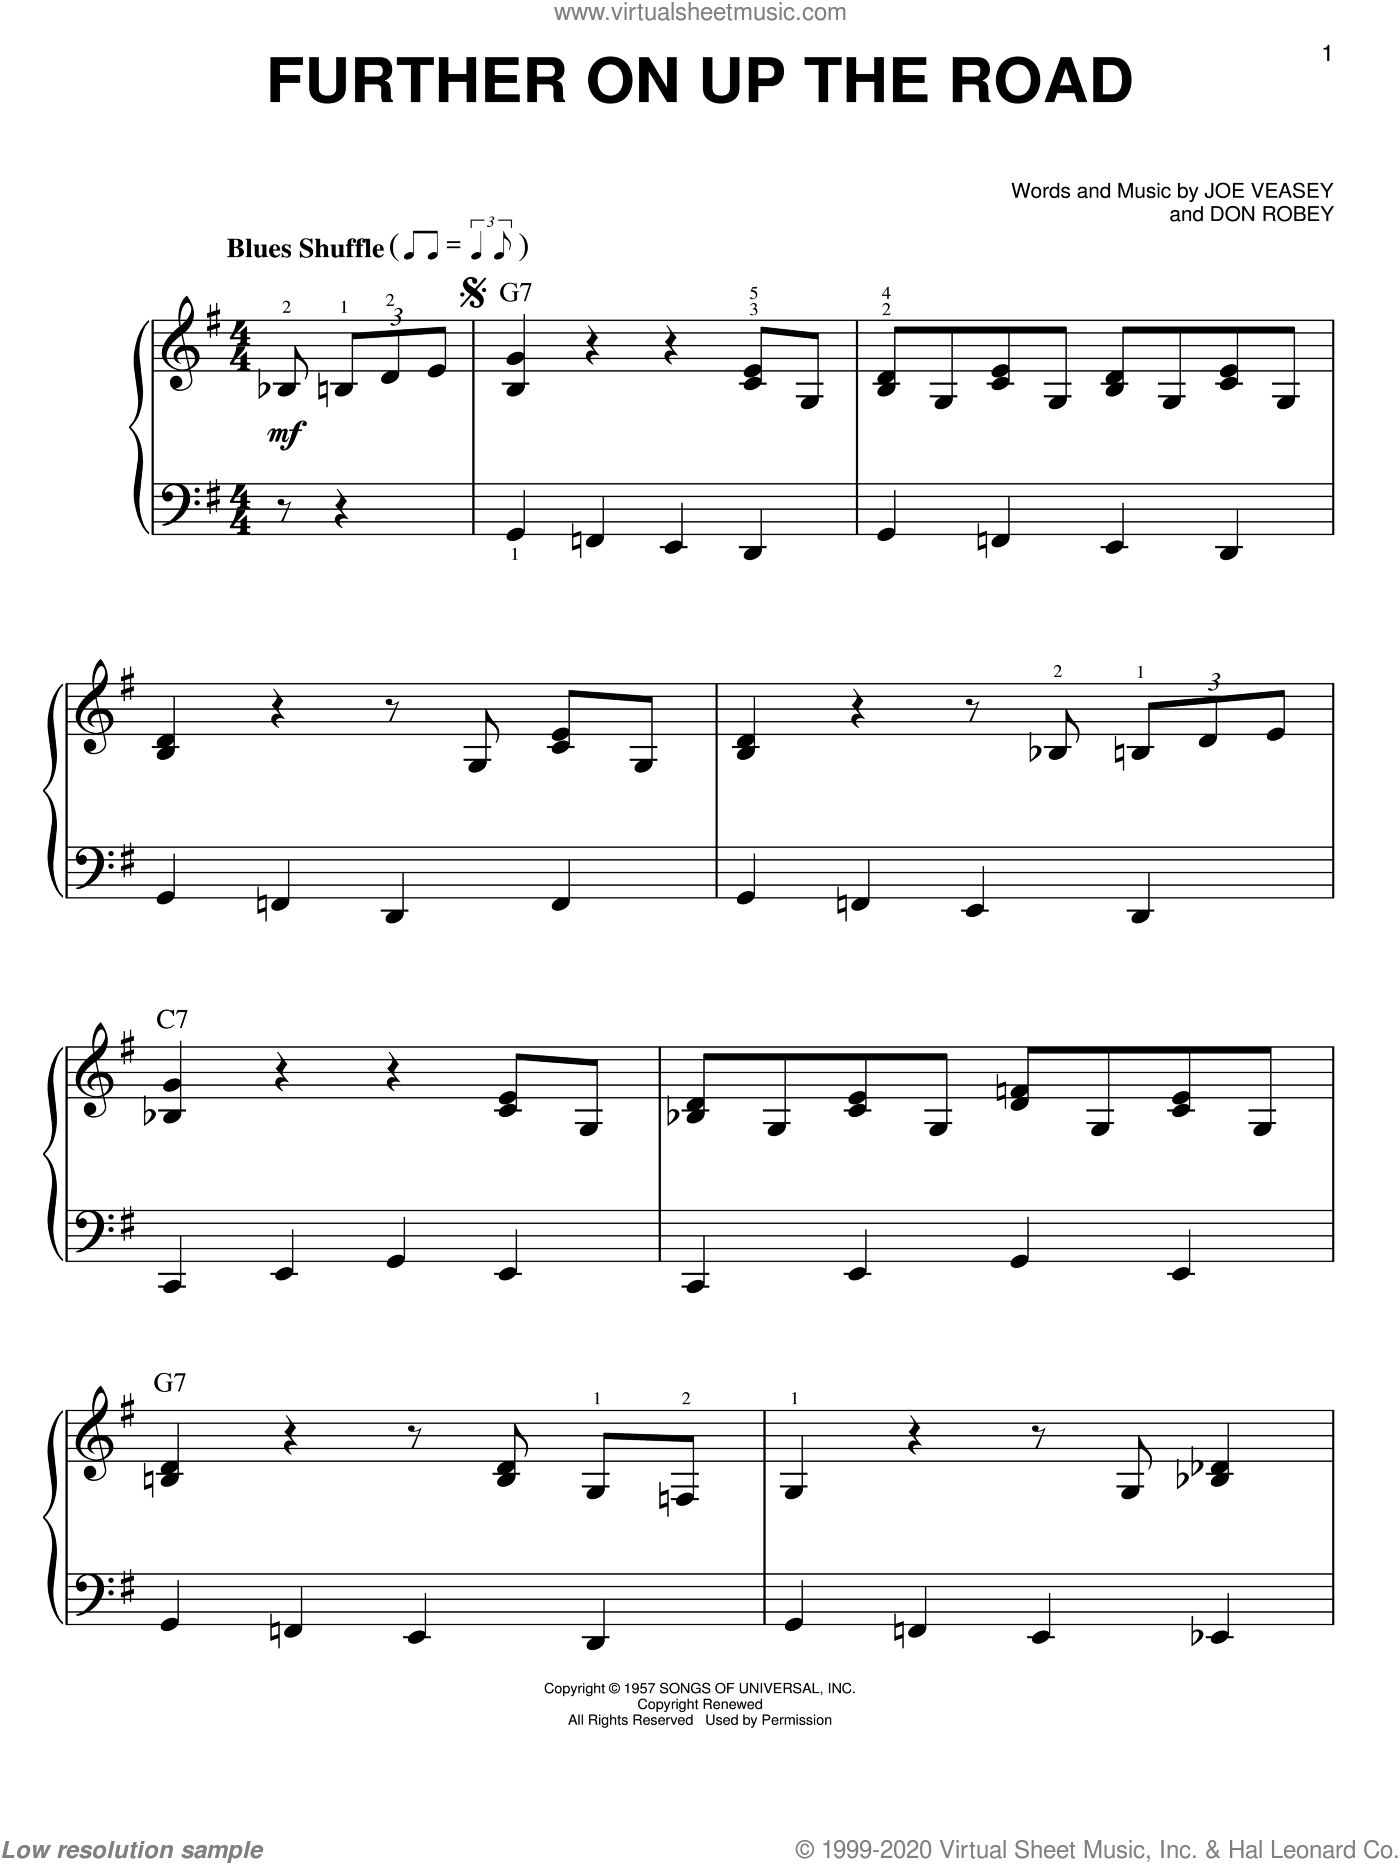 Further On Up The Road sheet music for piano solo (chords) by Joe Veasey